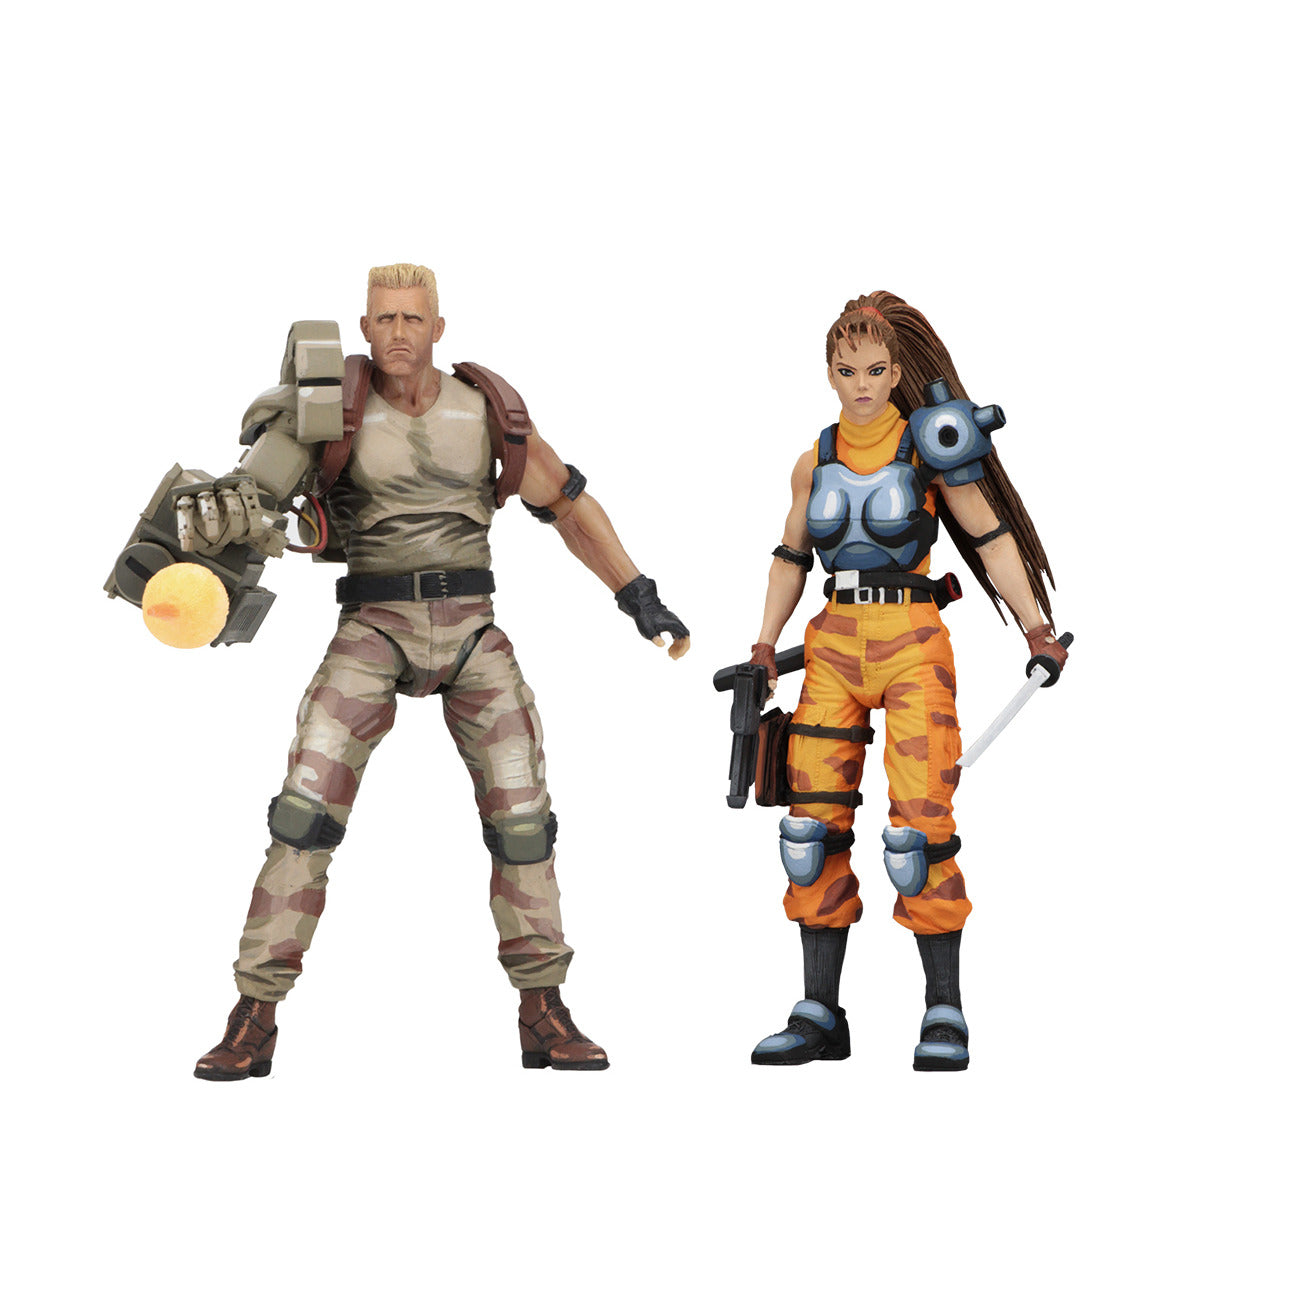 Alien vs. Predator Dutch & Lin Arcade Appearance 7 inch 2-Pack Action Figures